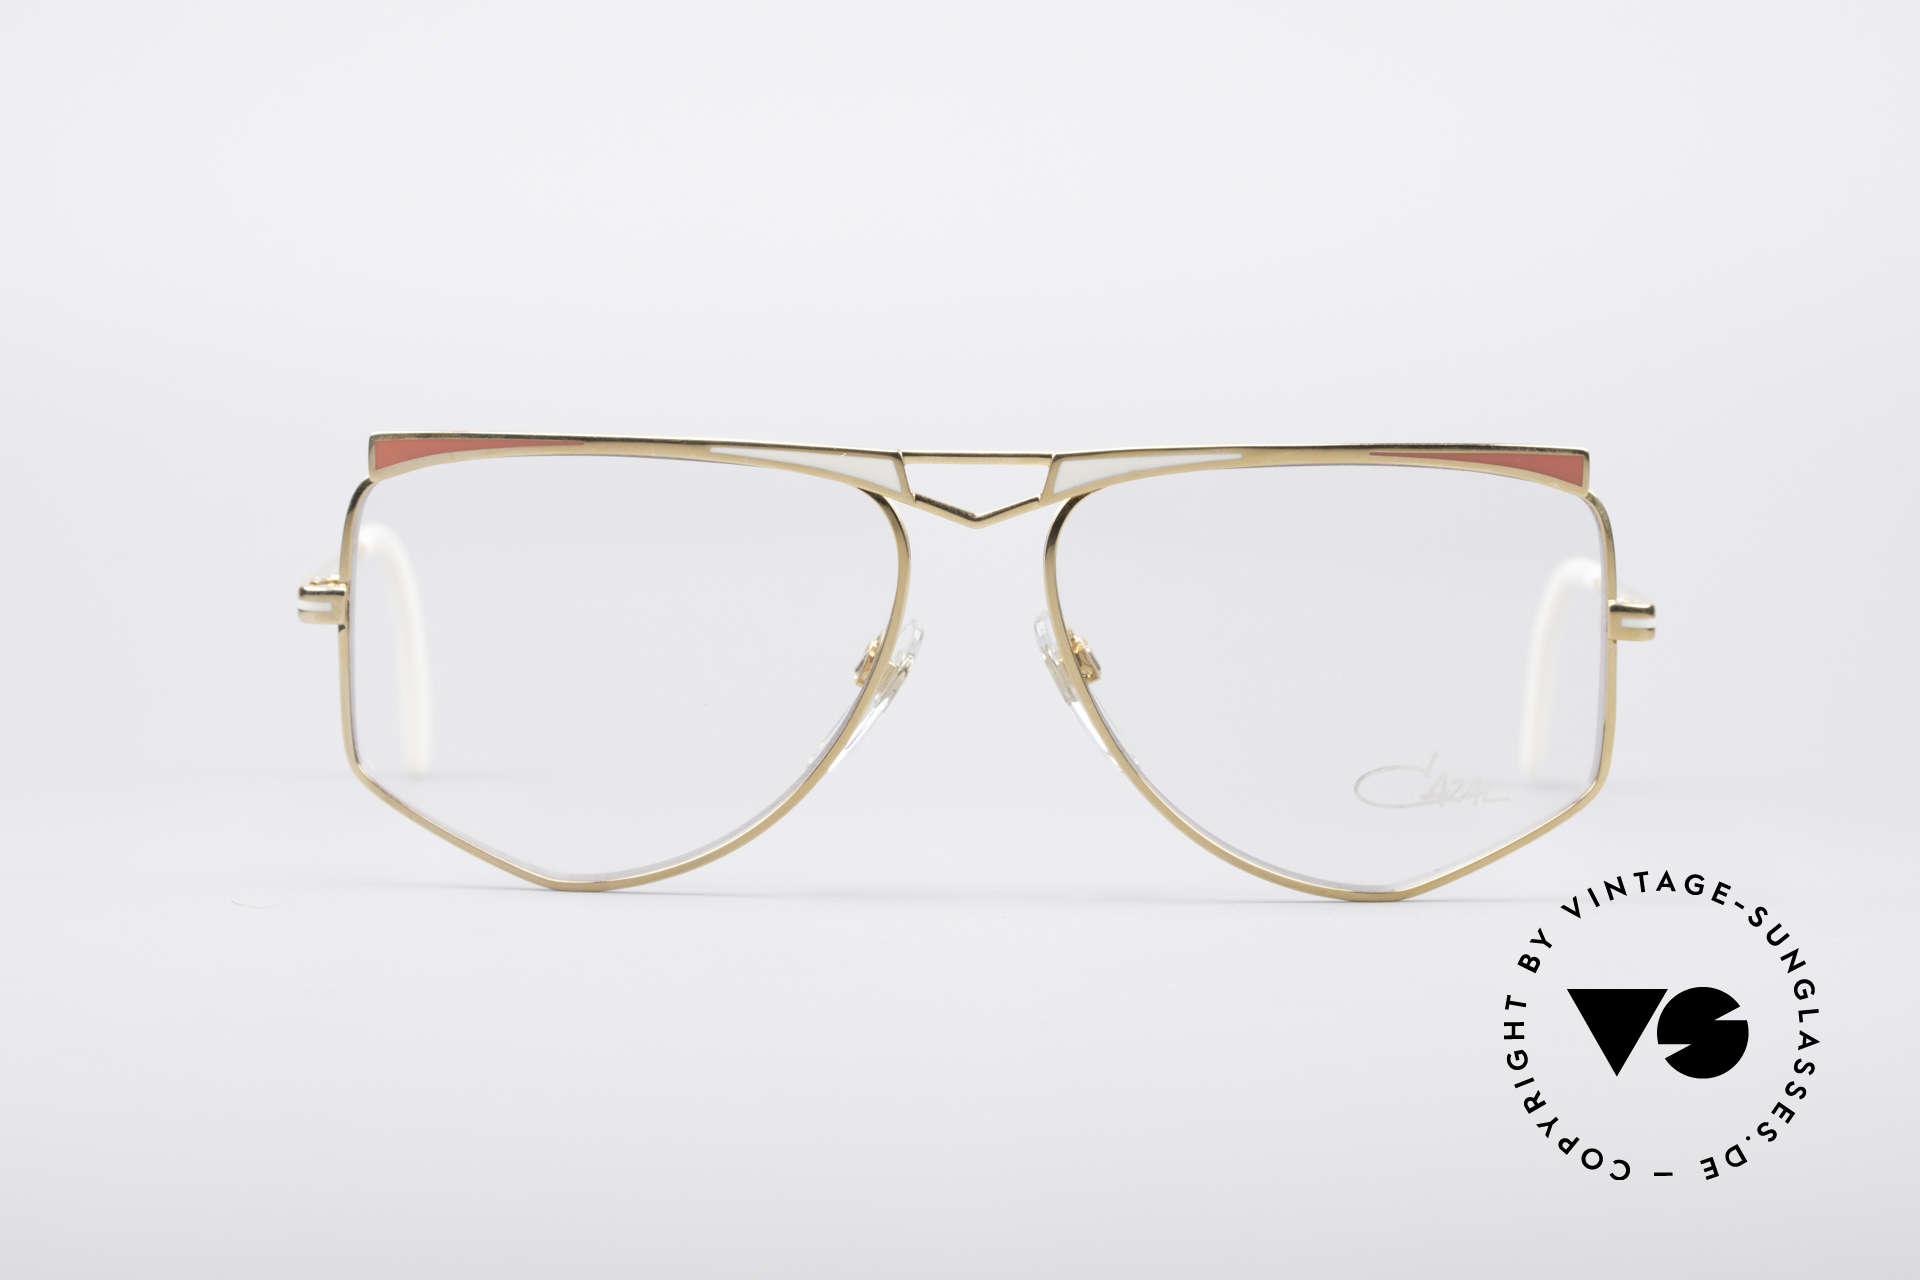 Cazal 227 True Vintage No Retro Frame, perfect matching frame coloring; typically 80's fashion, Made for Women